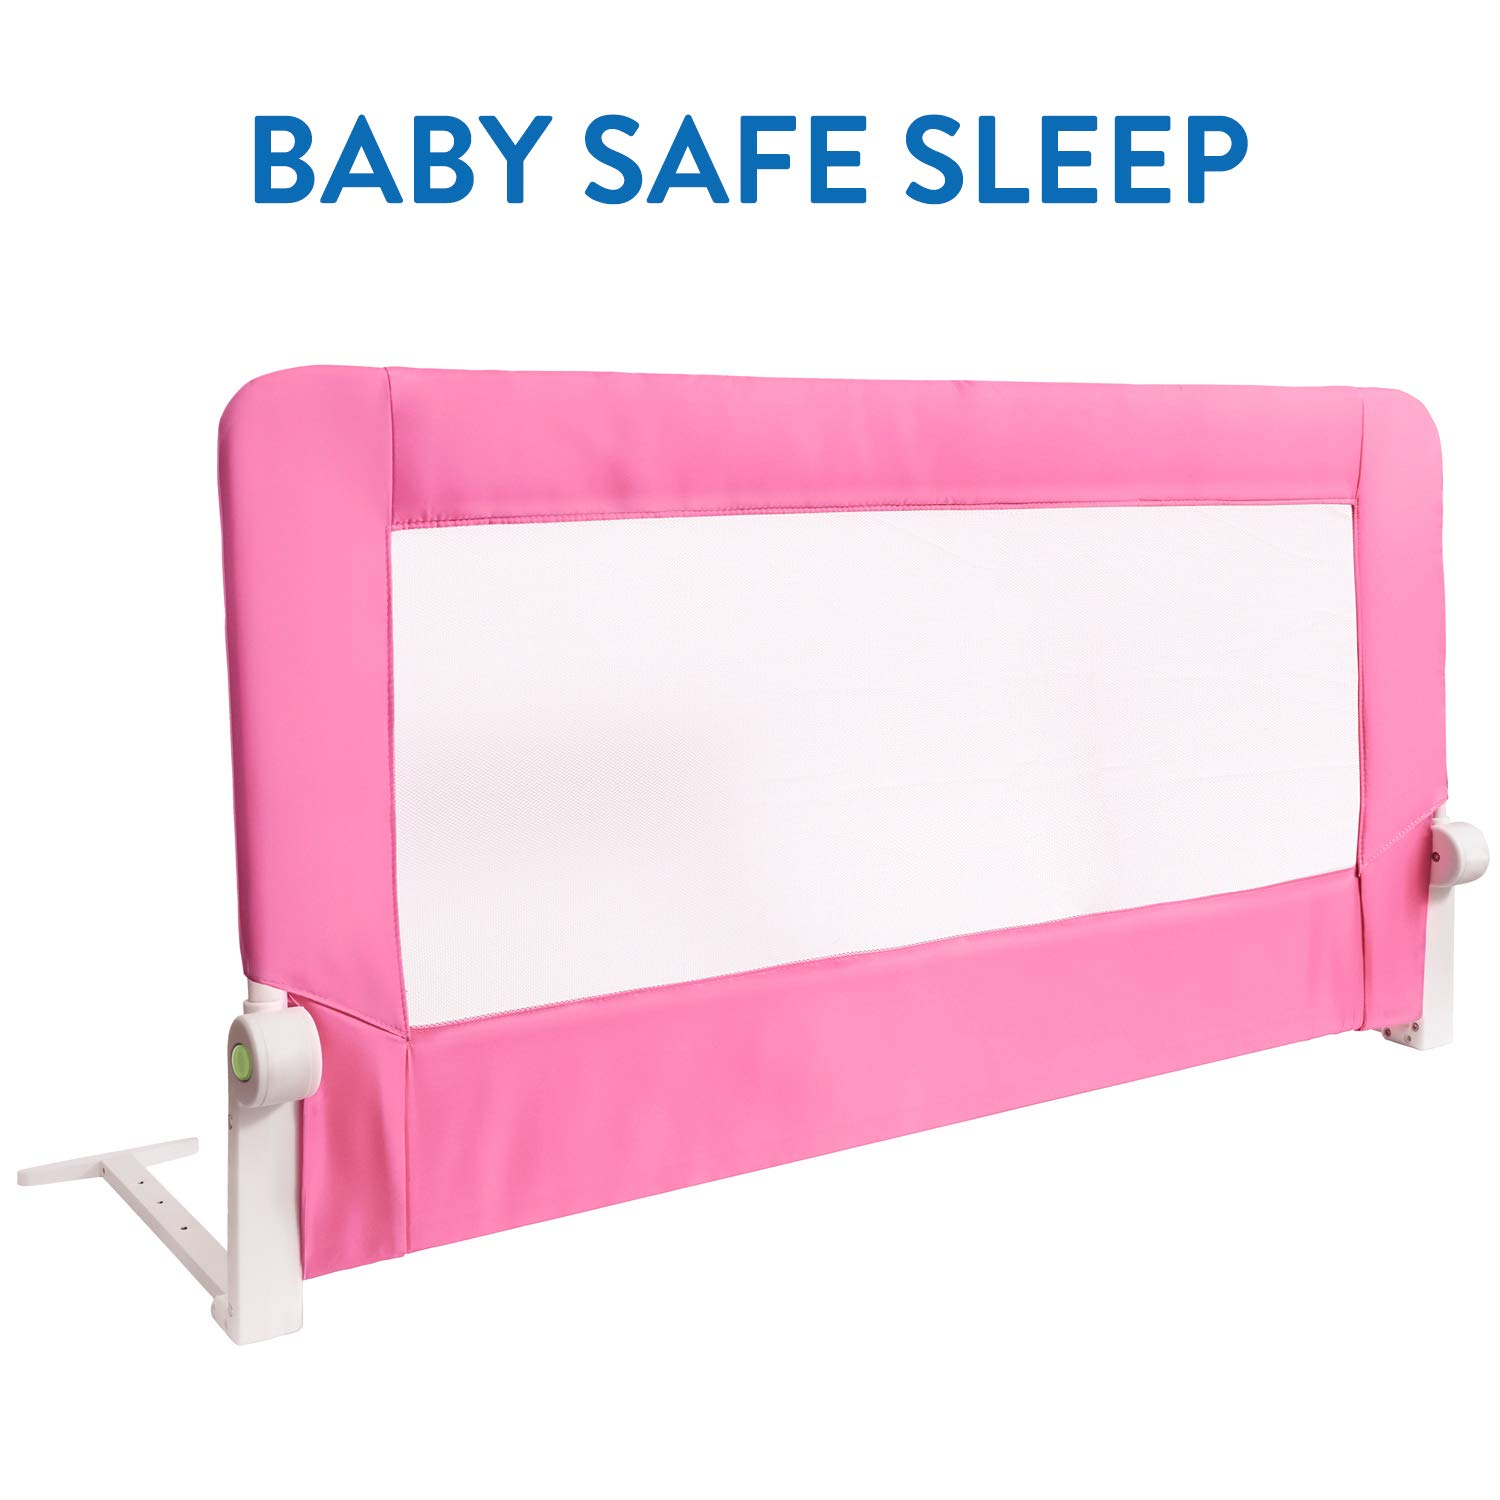 Tatkraft Guard Safety Bed Rail for Babies and Toddlers, Fits Twin, Full, Queen and King Mattress, Powder Coated Steel, Plastic and Polyester, Pink by Tatkraft